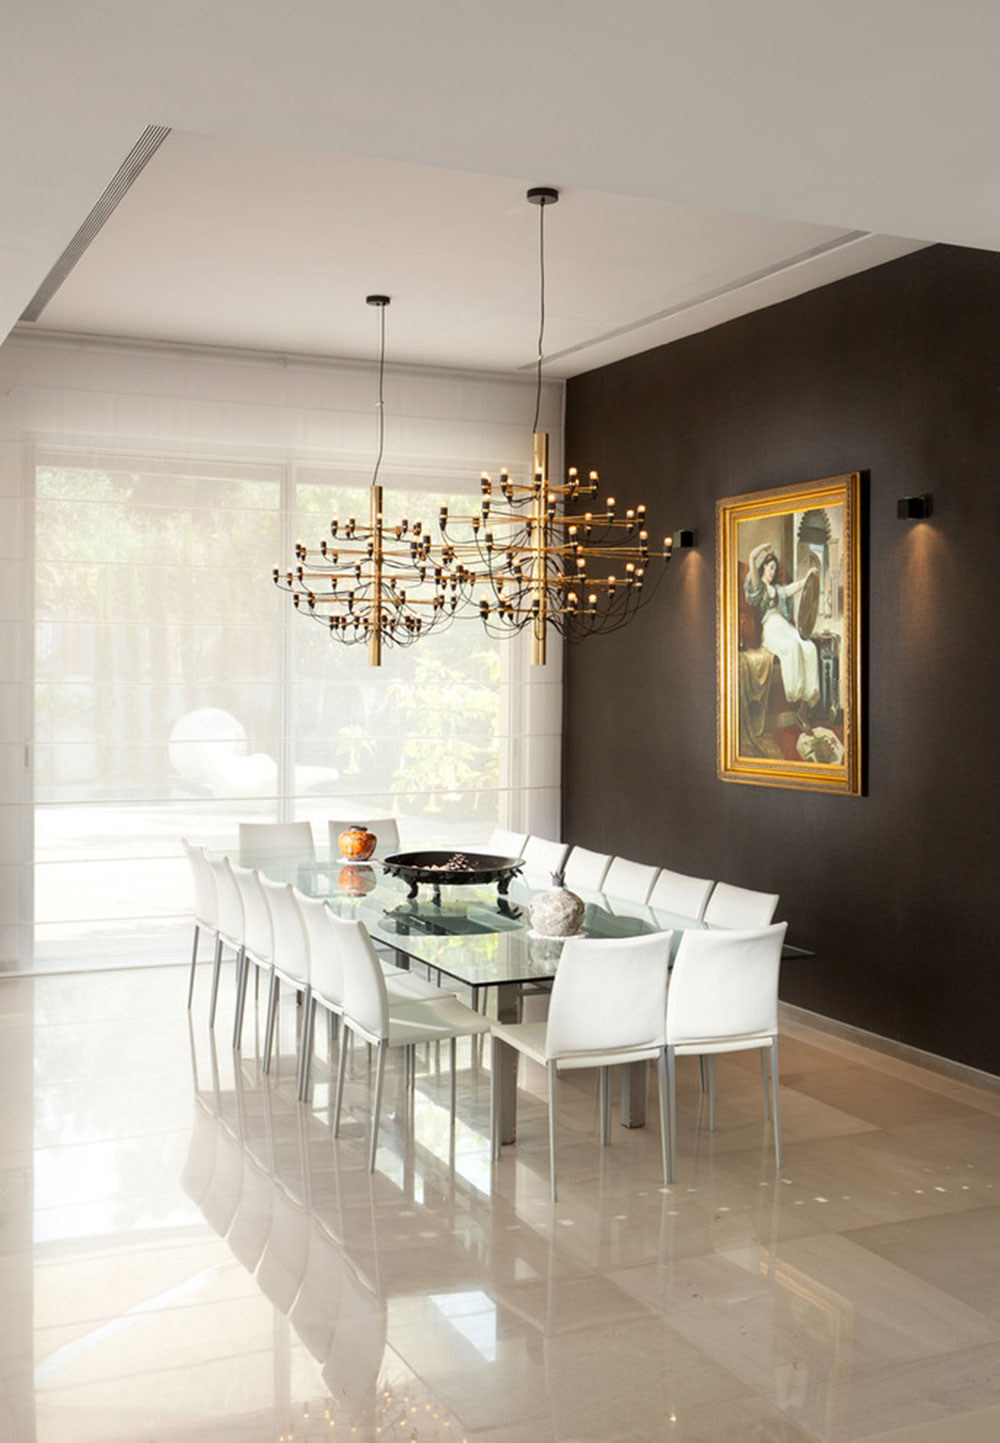 How to choose a chandelier for the dining room10 How to choose a chandelier for the dining room